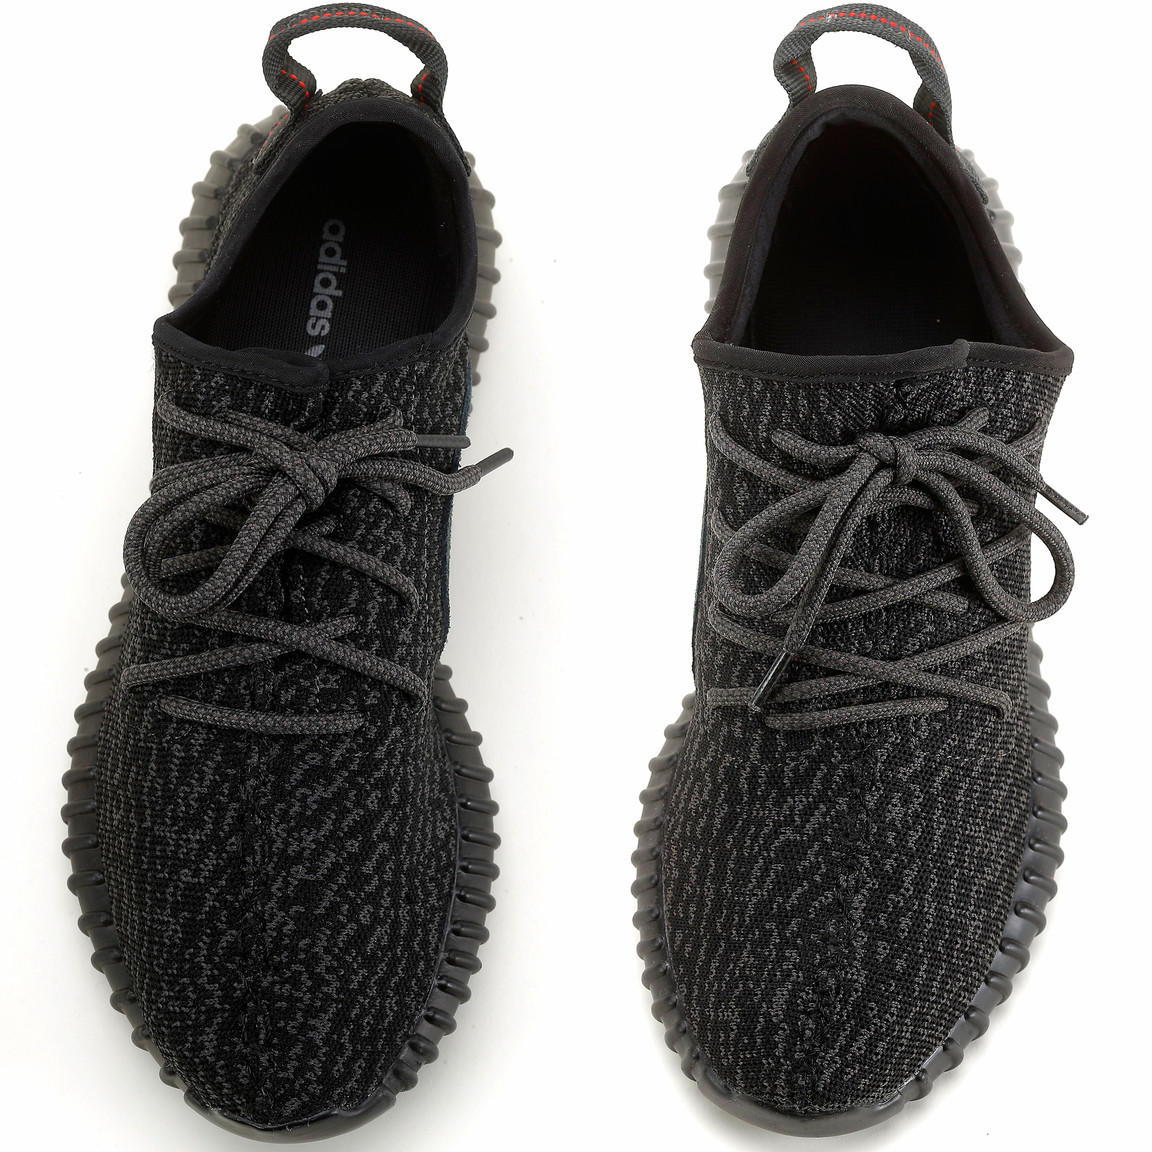 ecbdf2d2a5d Counterfeit Yeezys and the booming sneaker black market - Los ...